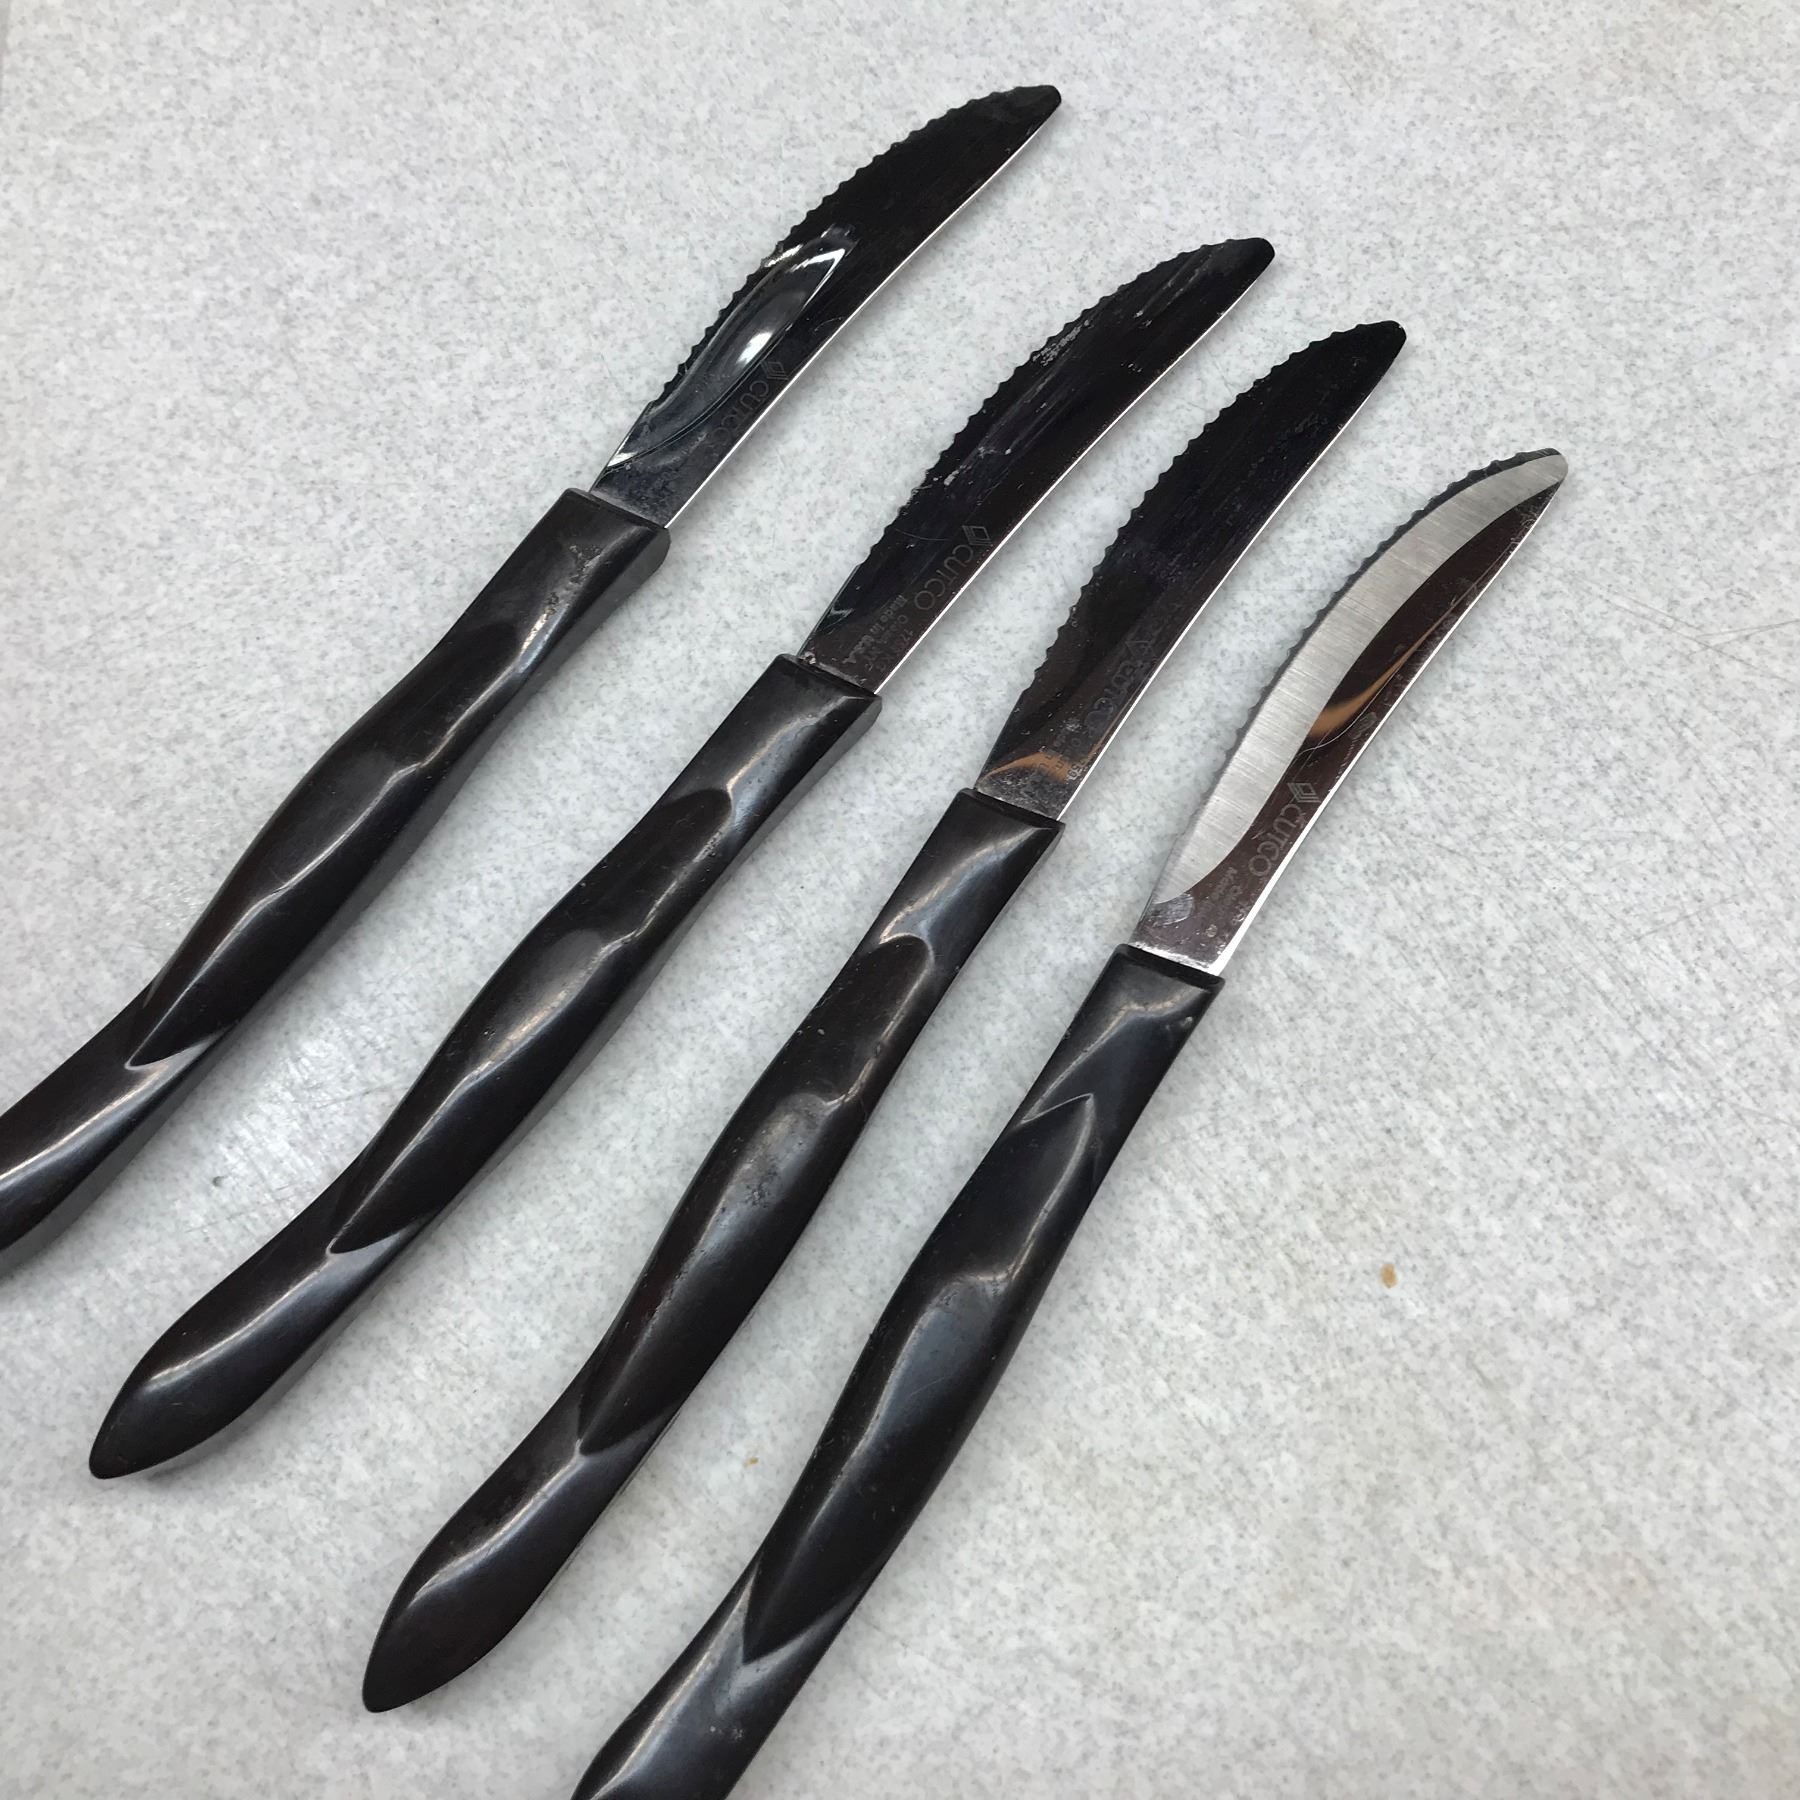 ... Image 2 : Cutco Kitchen Cutlery Set (a Few Are Missing) ...